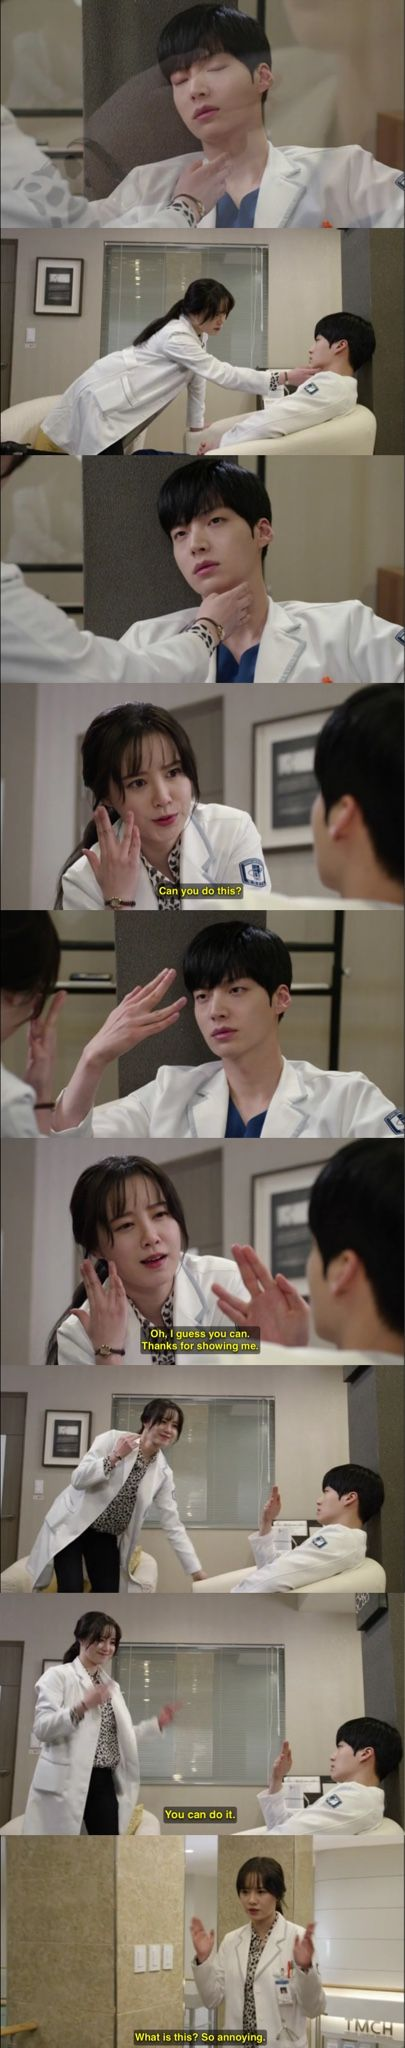 'Blood' starring Ahn Jae Hyun and Goo Hye Sun. Loved this part:)